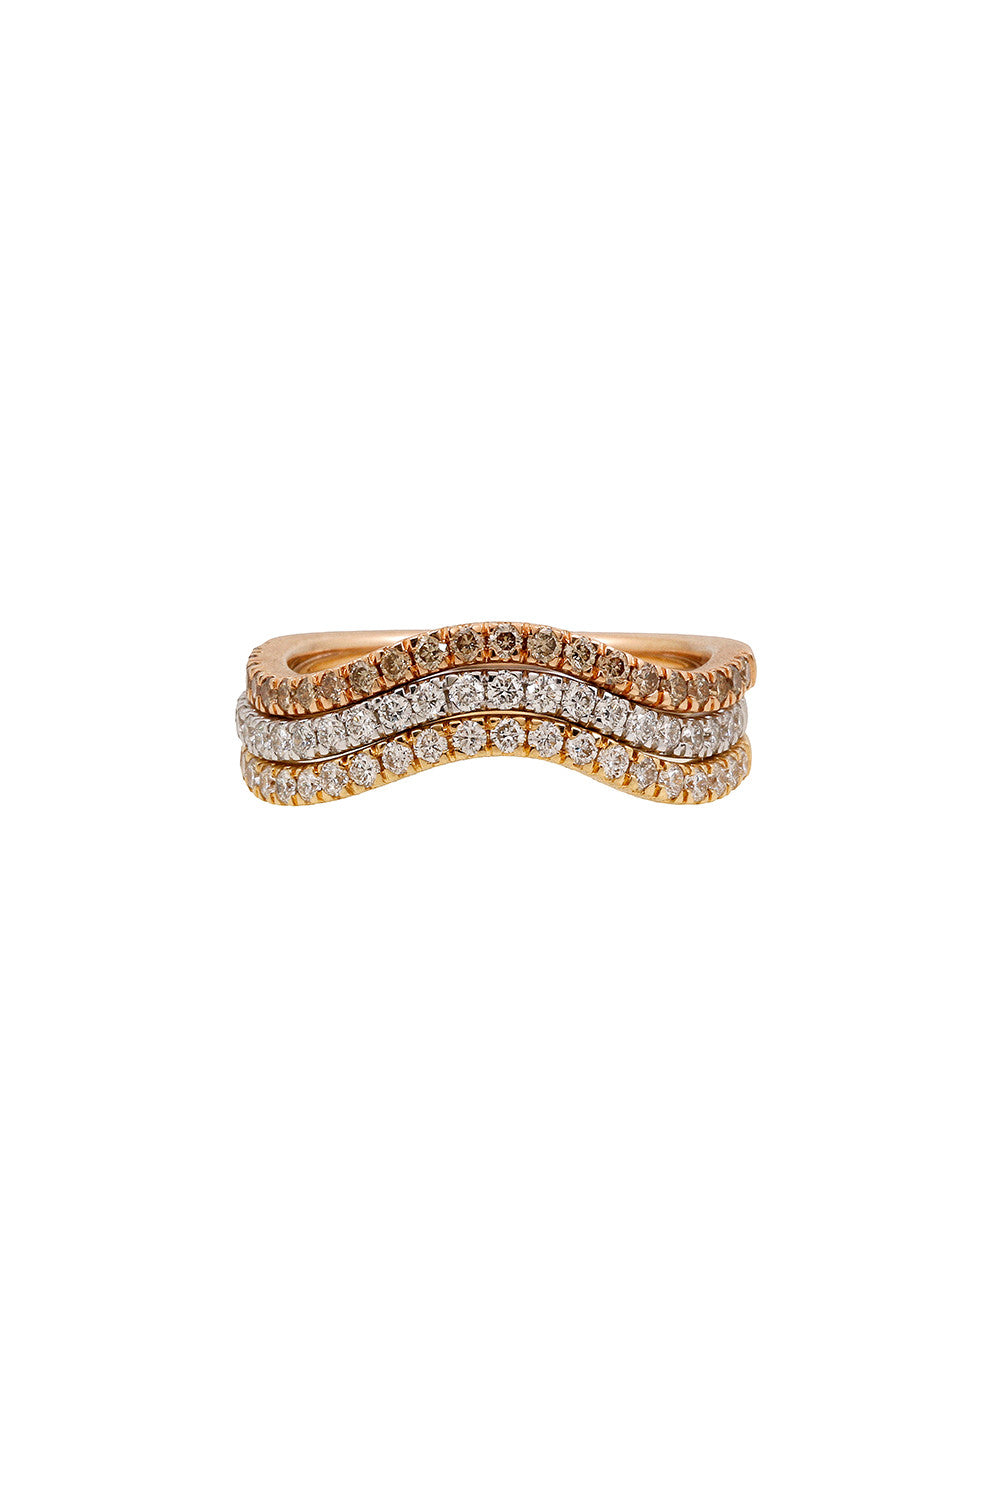 HARMONIC Stackable Wave Rings in Yellow, White & Pink Gold with White & Champagne Diamonds